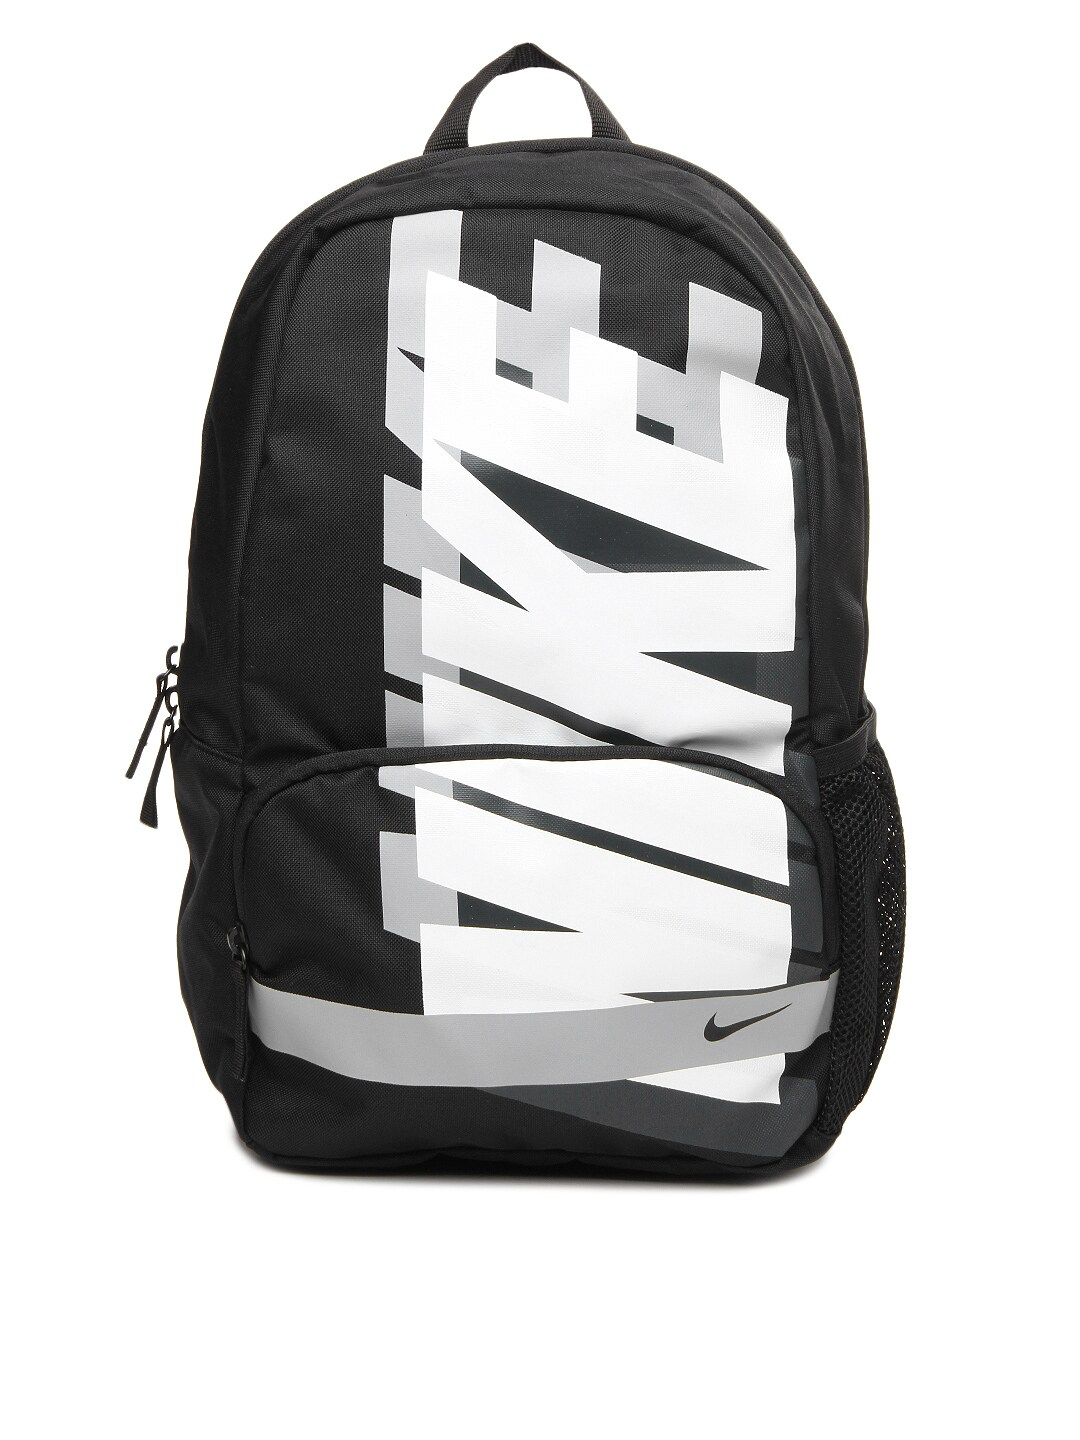 Buy black and white nike bag   up to 53% Discounts 1225b7b92